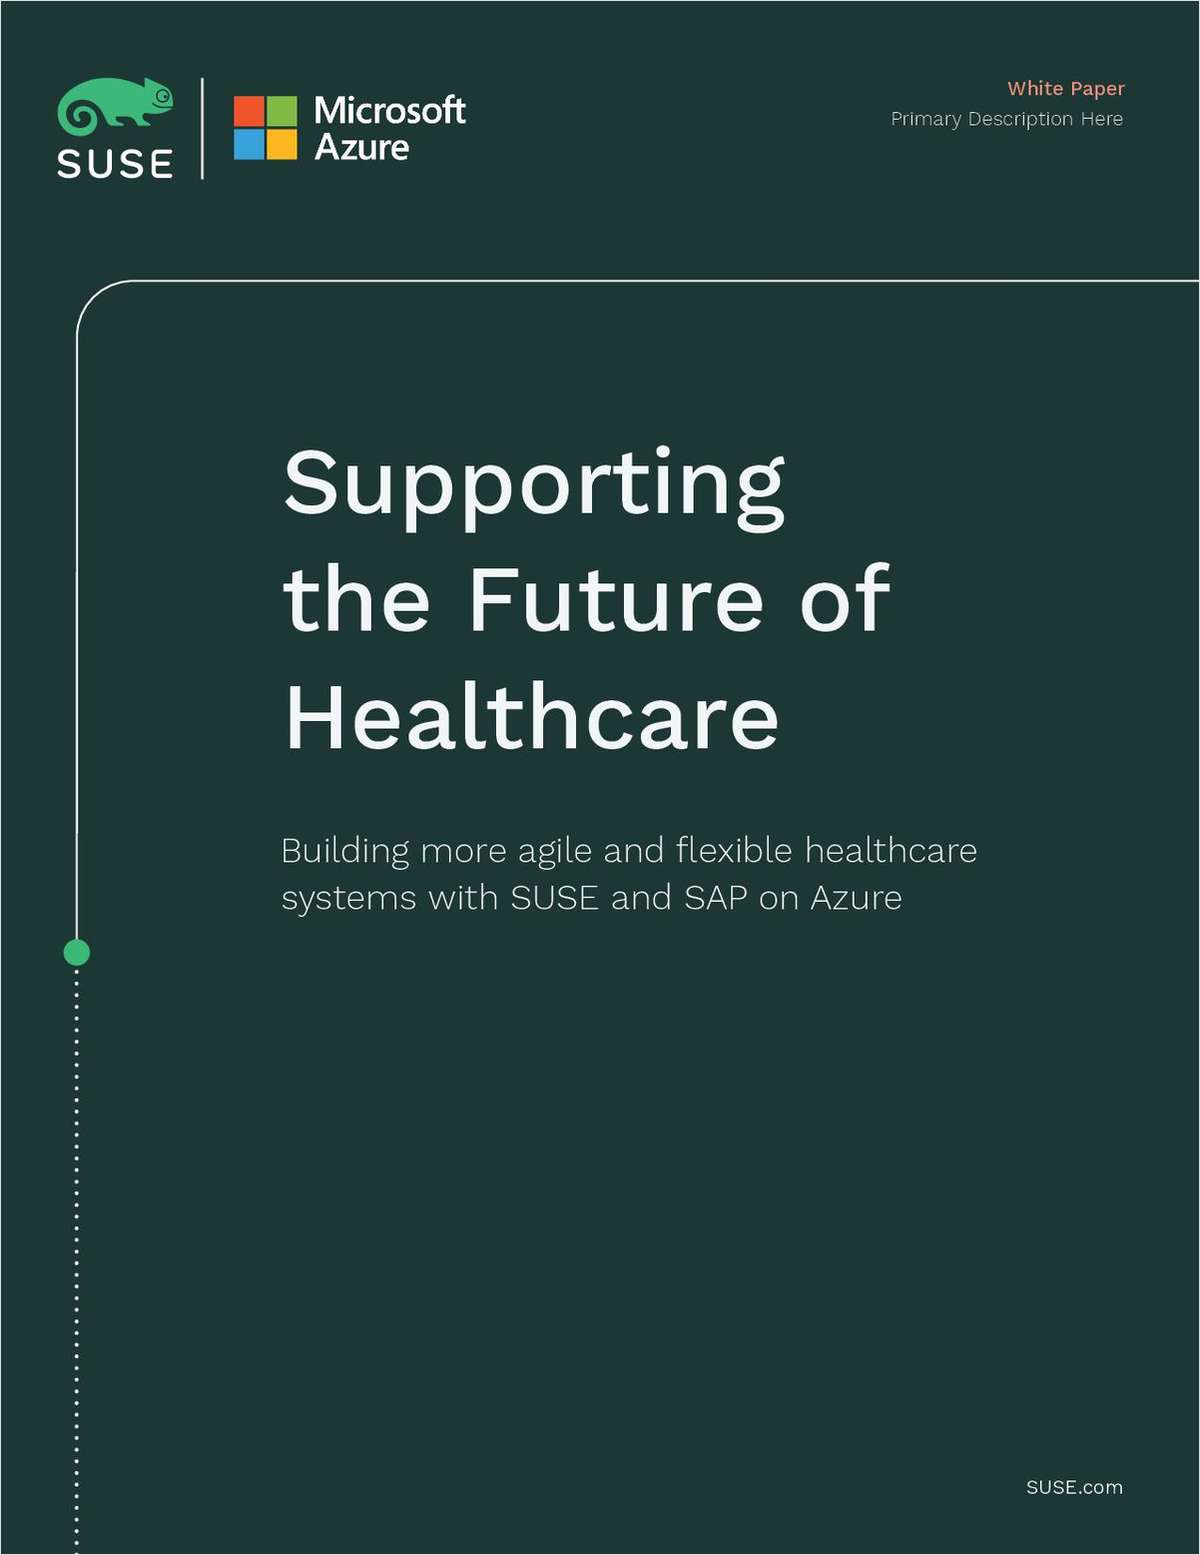 Supporting the Future of Healthcare